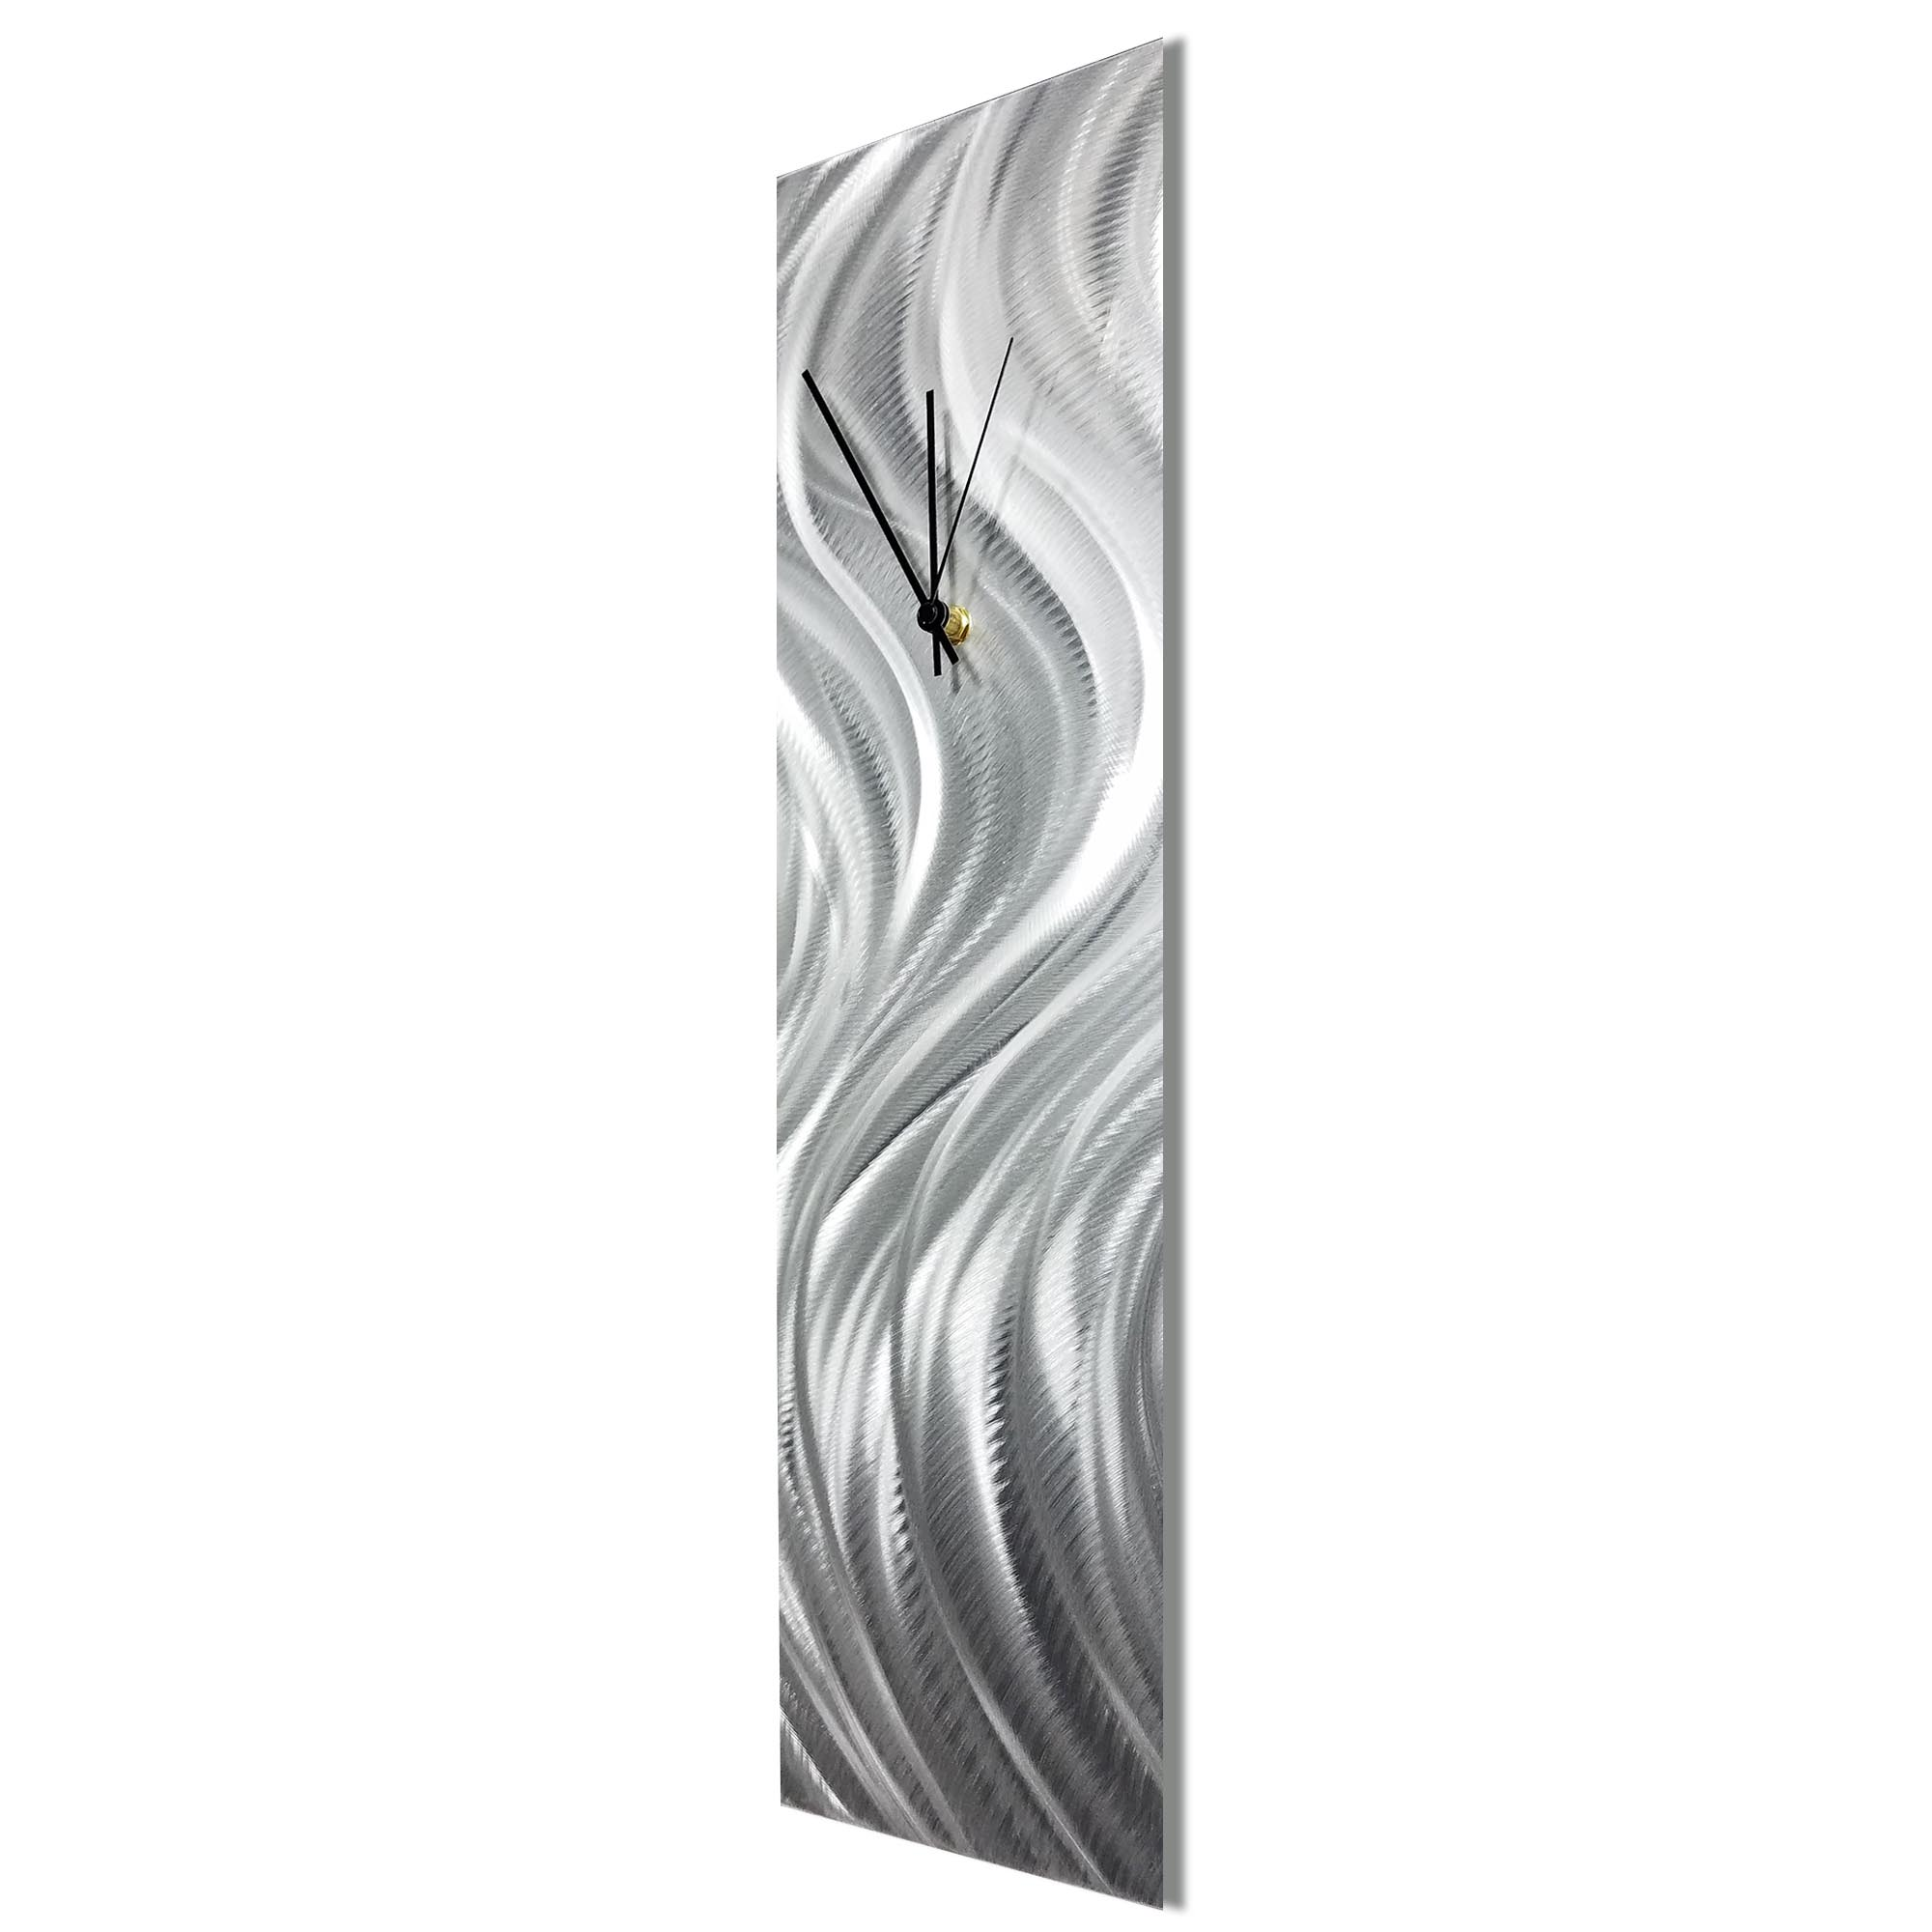 Silver River Clock by Helena Martin Contemporary Wall Clock on Natural Aluminum - Image 2